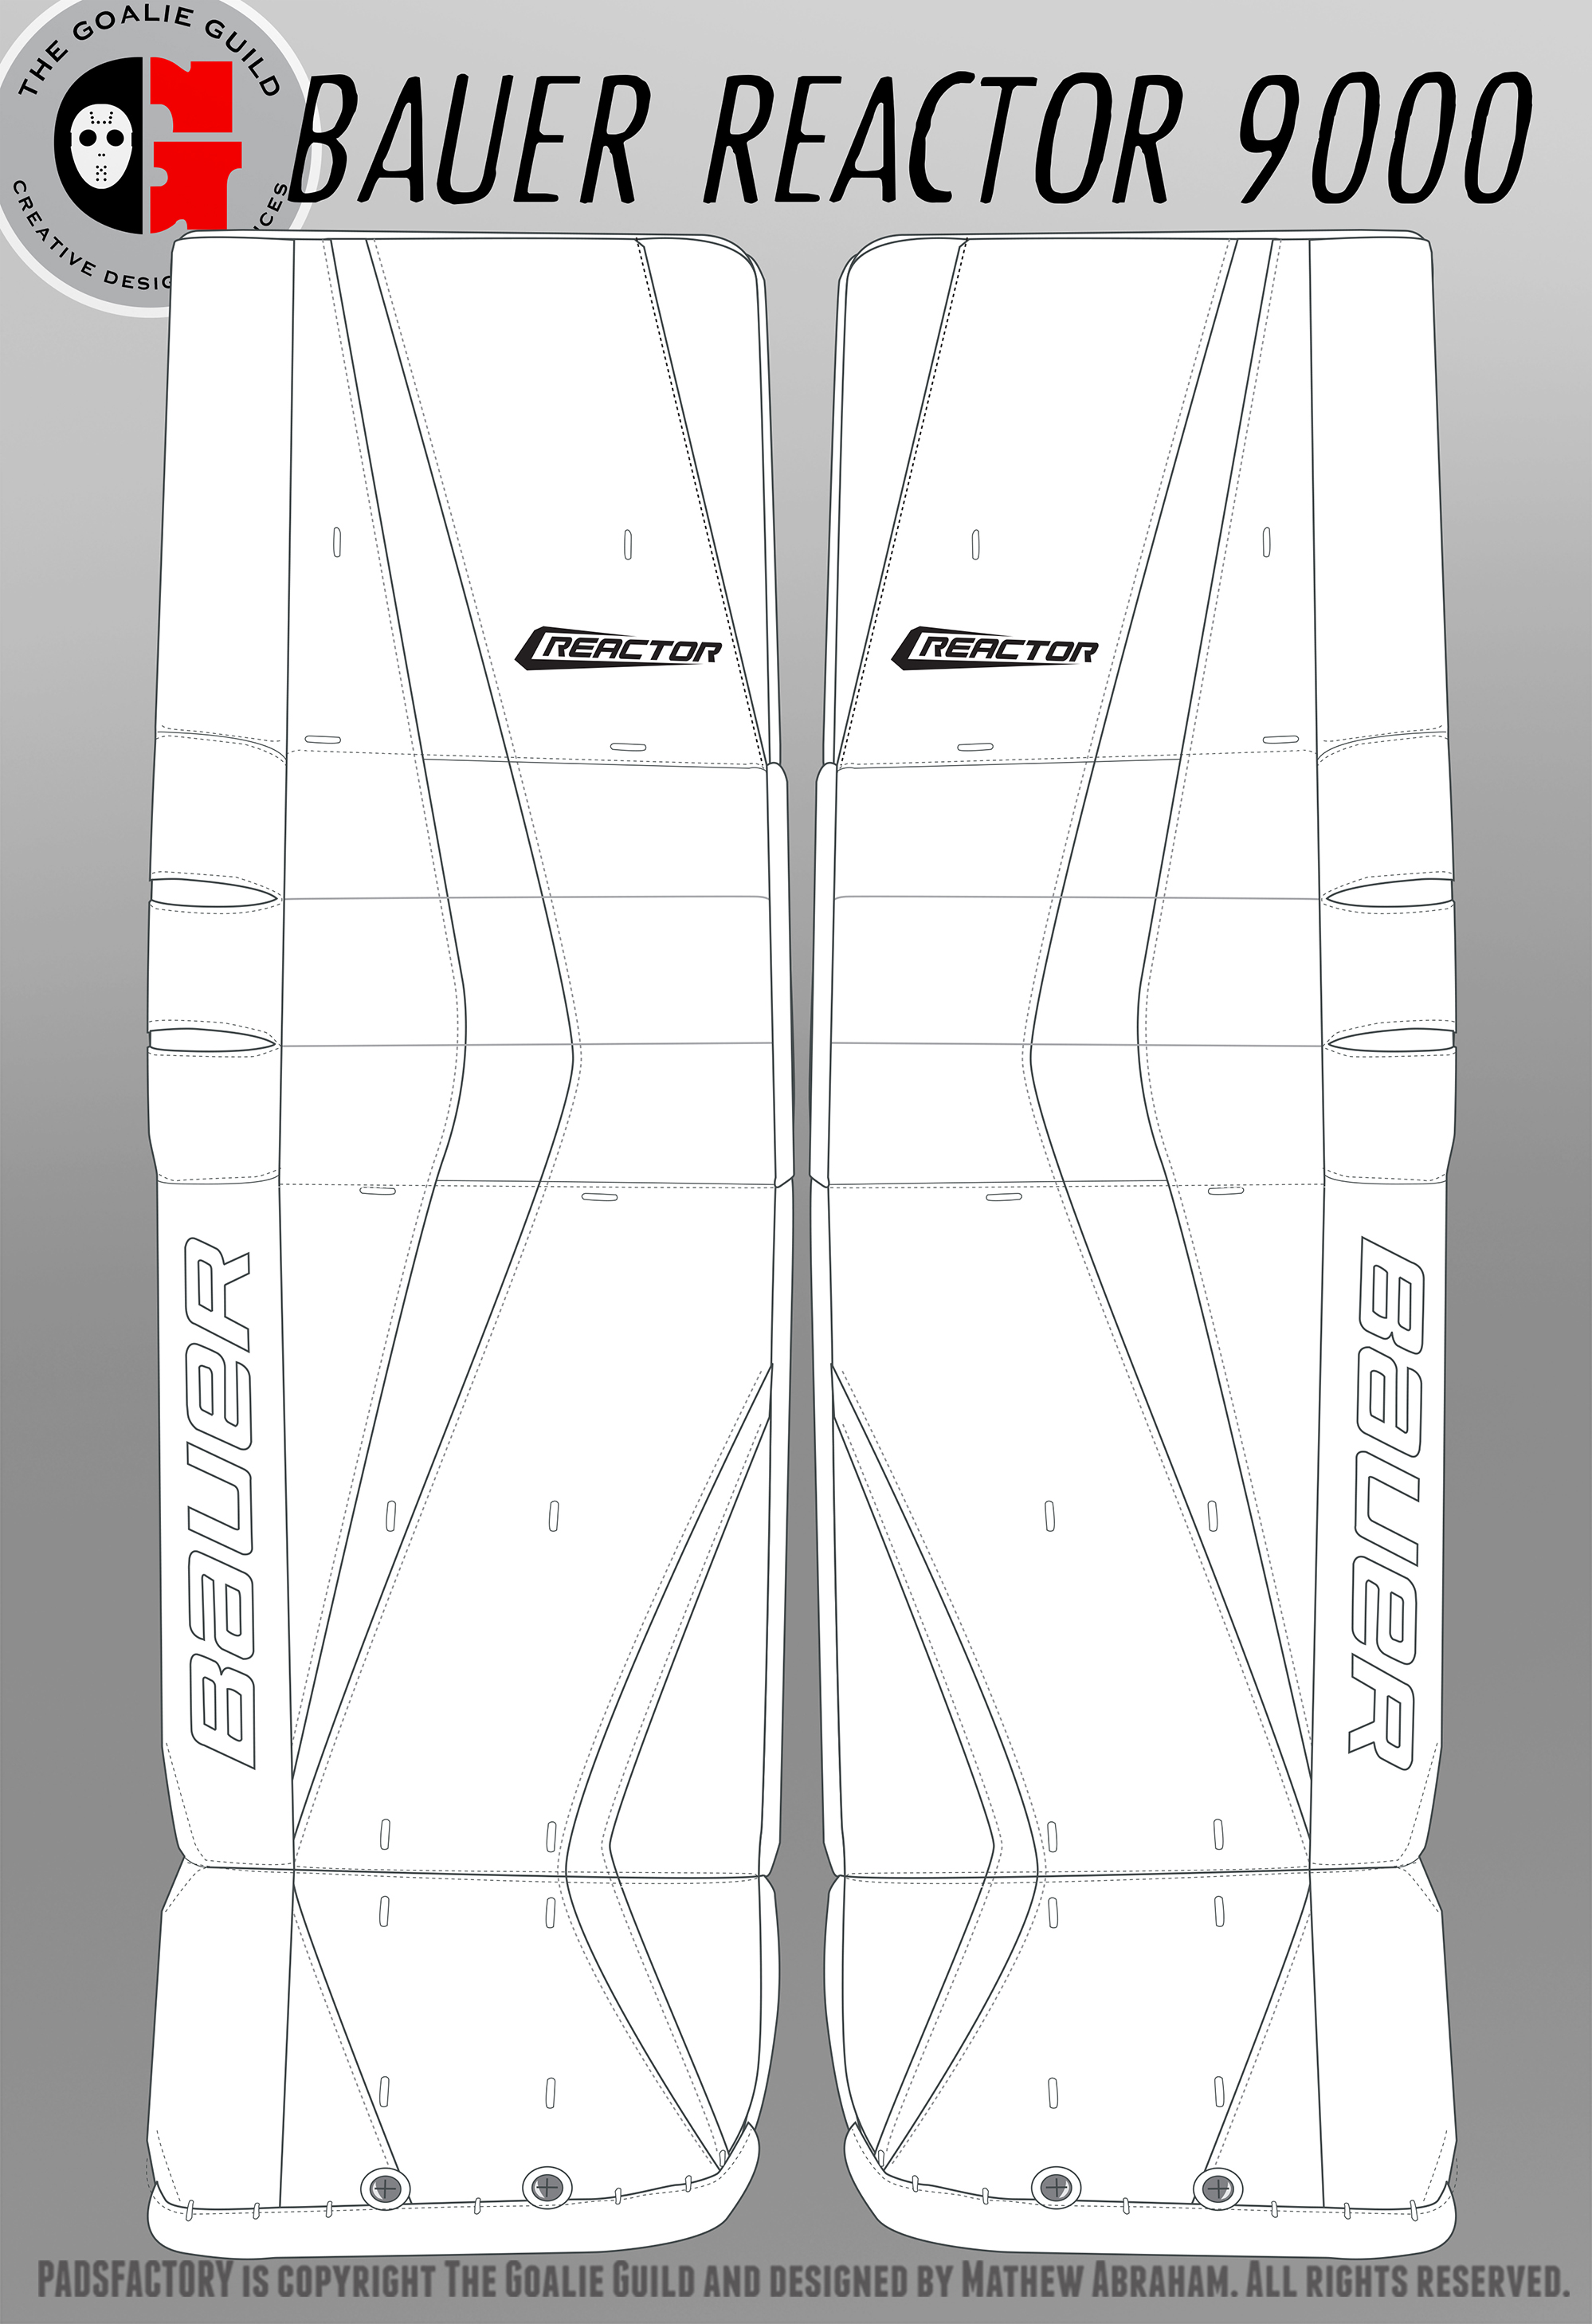 bauer goalie mask template - bauer reactor 9000 leg pads click to download the blank